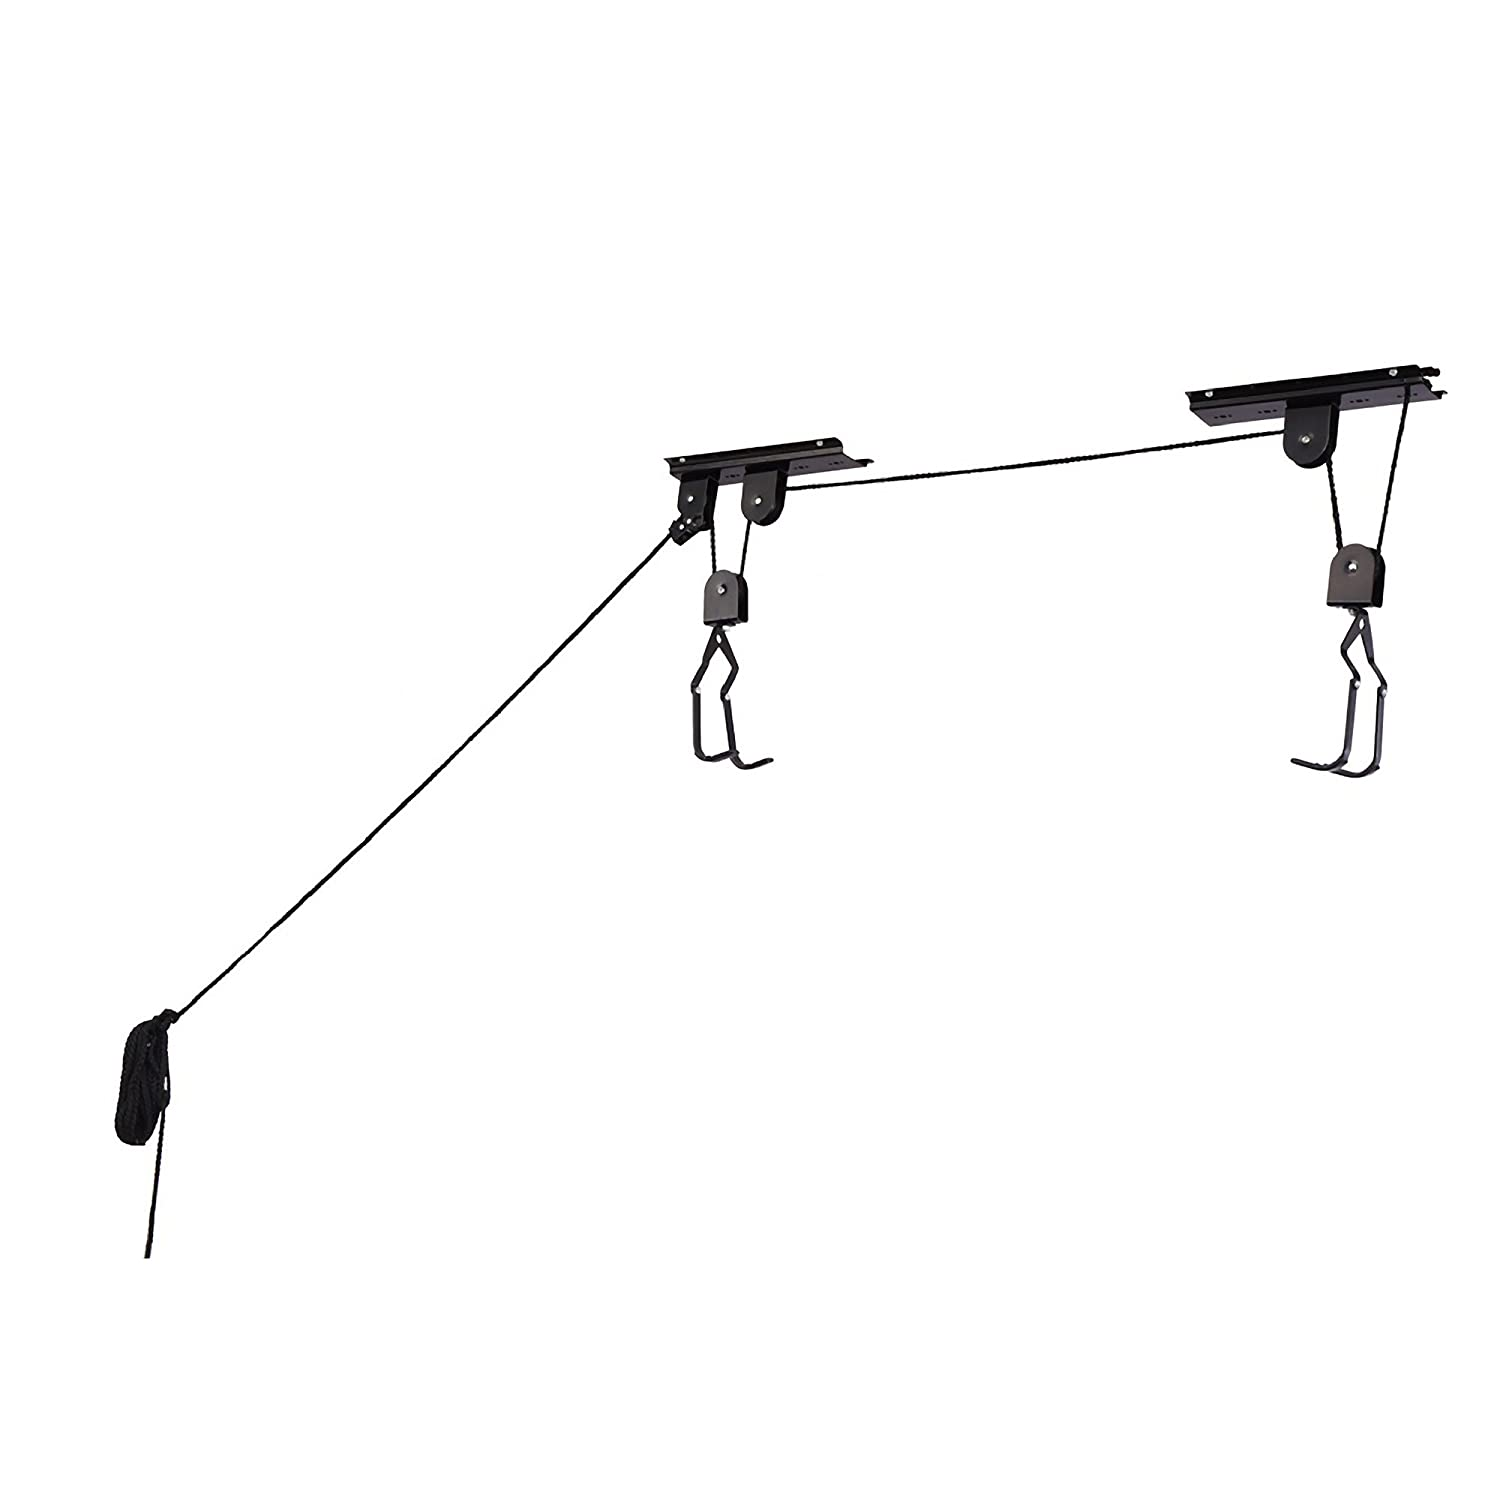 Amazon.com: RAD Cycle Products Heavy Duty Bike Lift Hoist For Garage Storage  100lb Capacity Mountain Bicycle Hoist: Home Improvement